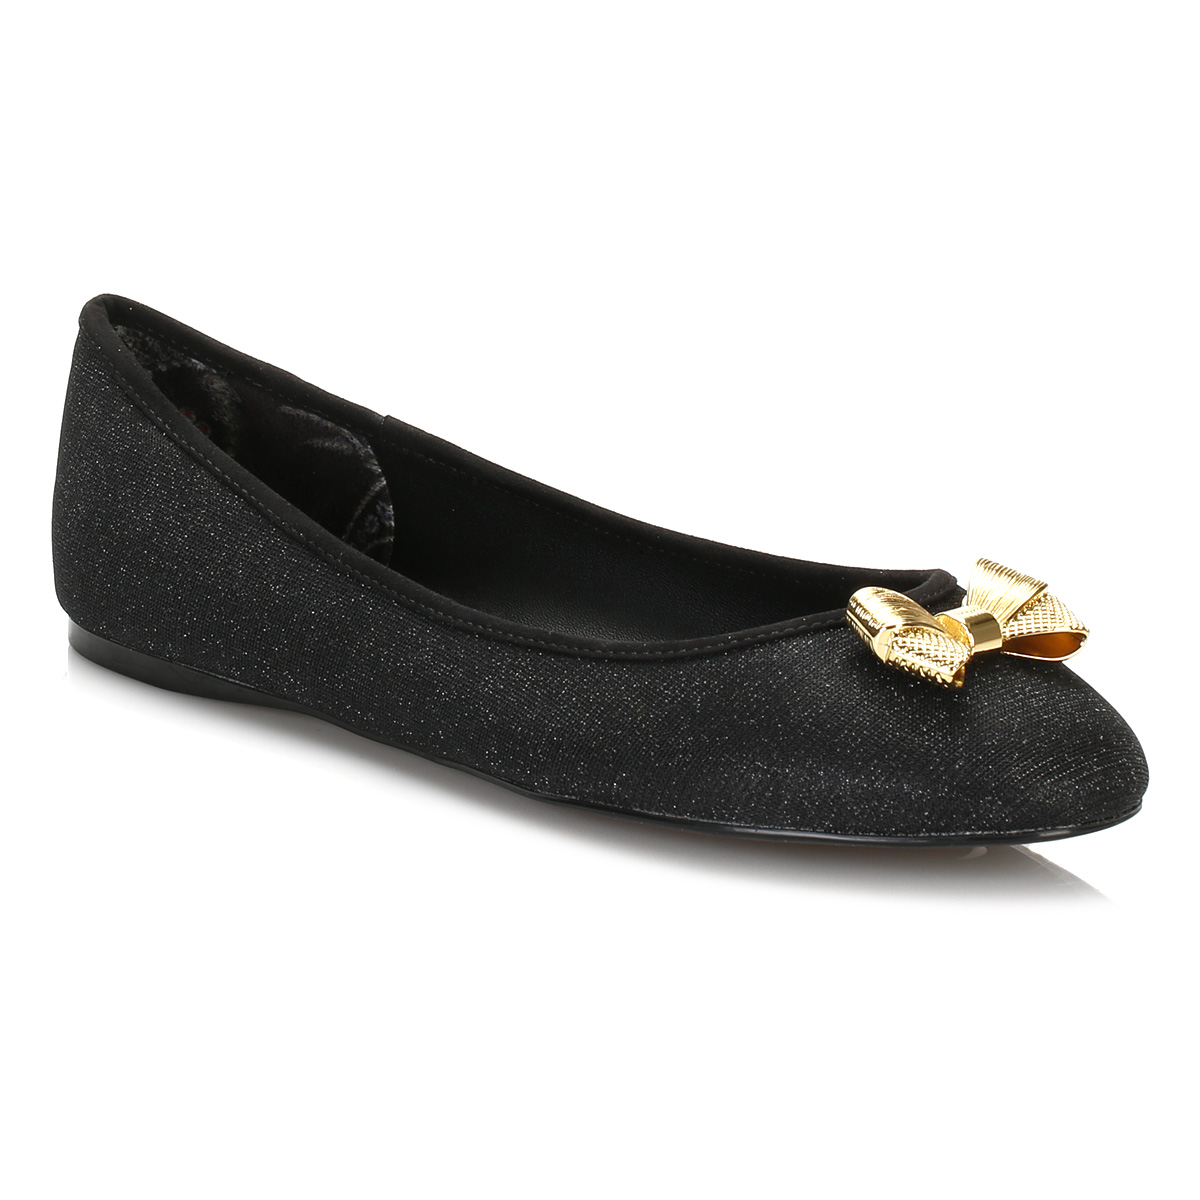 Shop for black glitter shoes online at Target. Free shipping on purchases over $35 and save 5% every day with your Target REDcard.